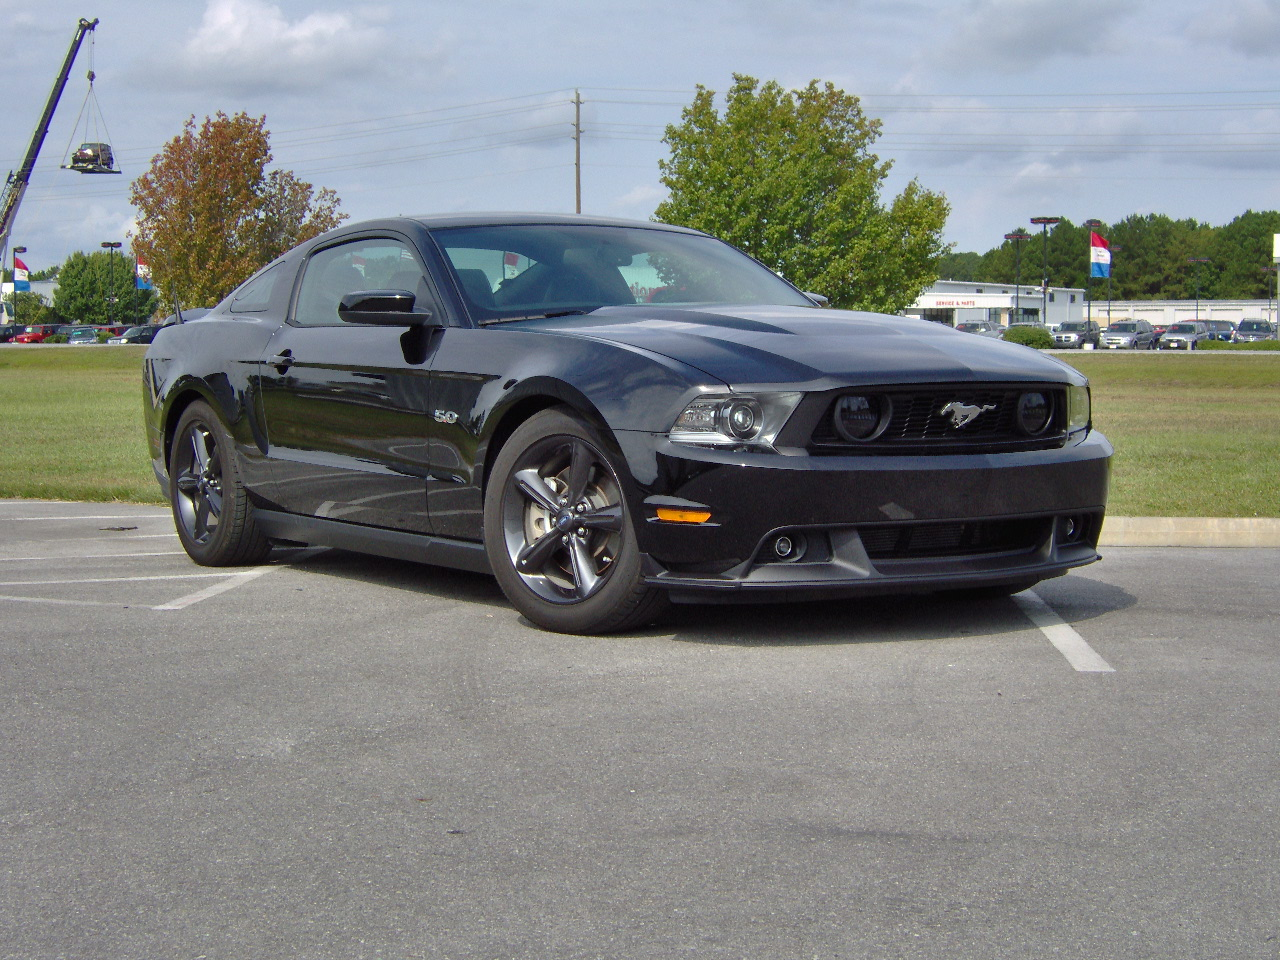 2011 ford mustang gt 5 0 picture mods upgrades